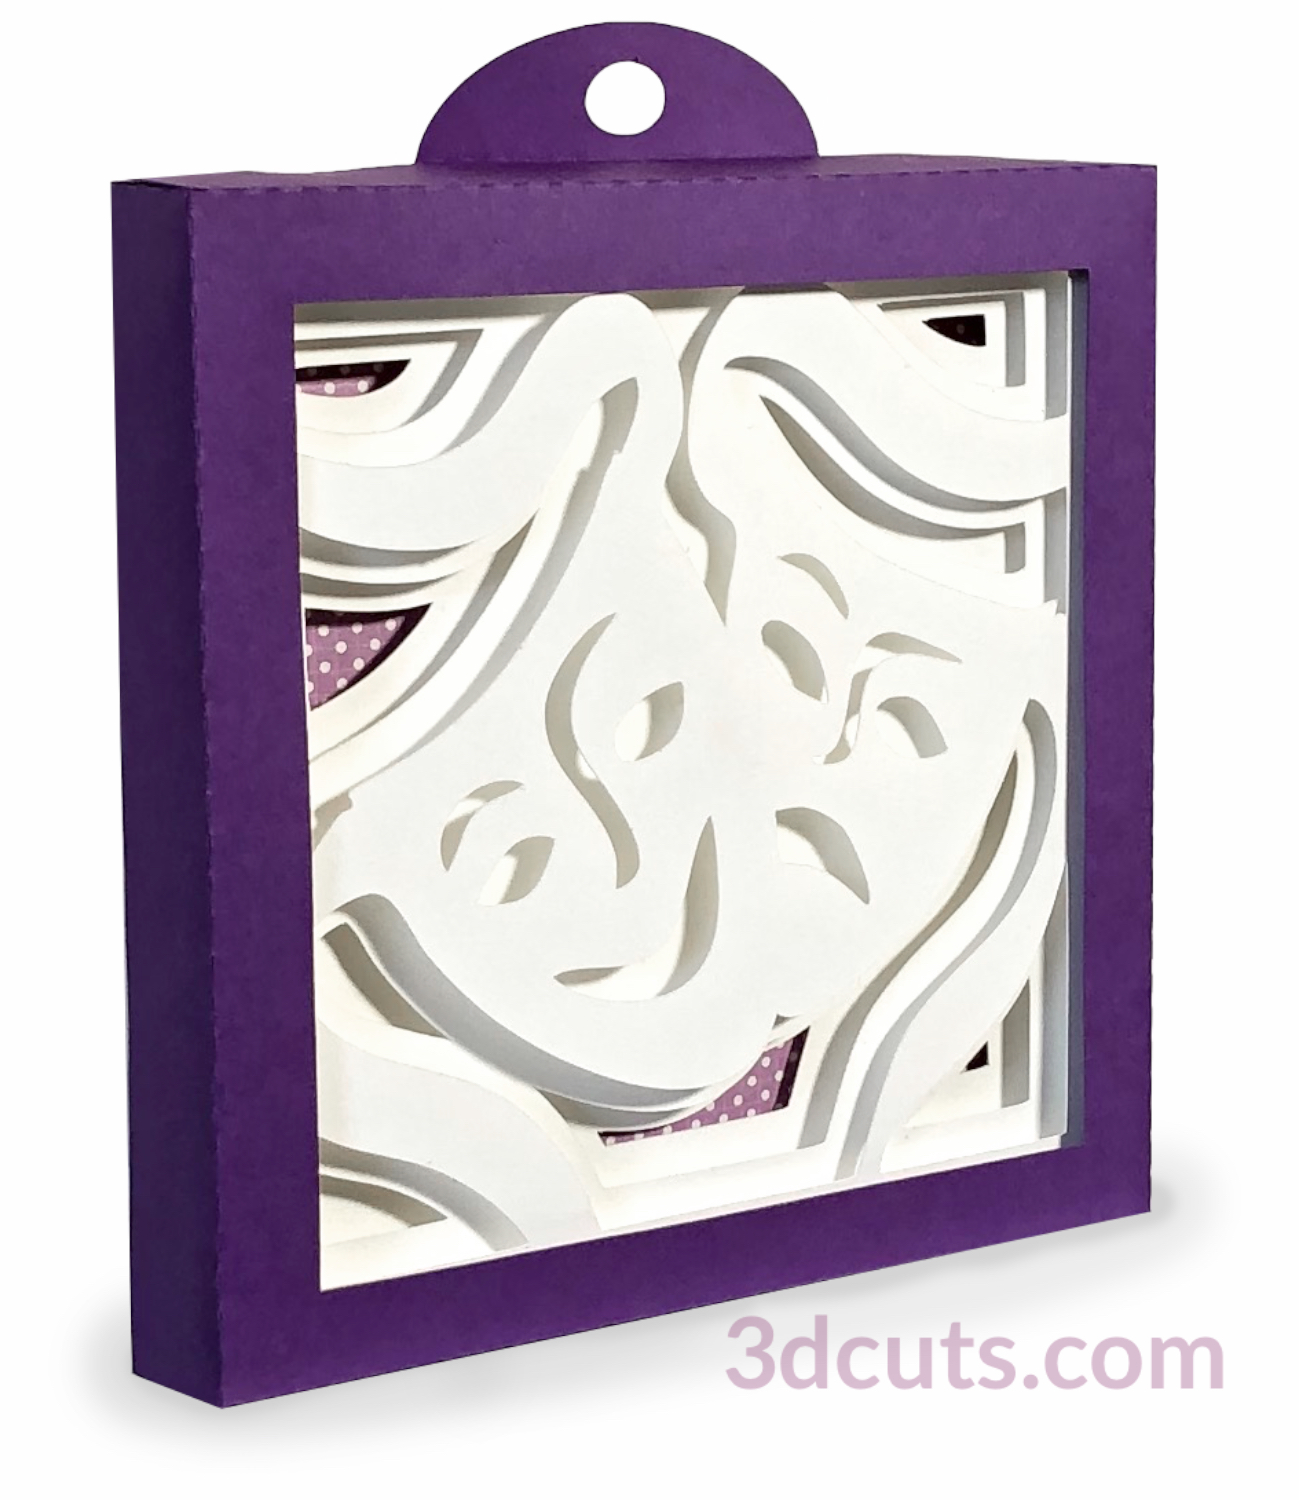 Drama Shadow Box , 3DCuts.com, Marji Roy, 3D cutting files in .svg, .dxf, and .pdf formats for use with Silhouette, Cricut and other cutting machines, paper crafting files